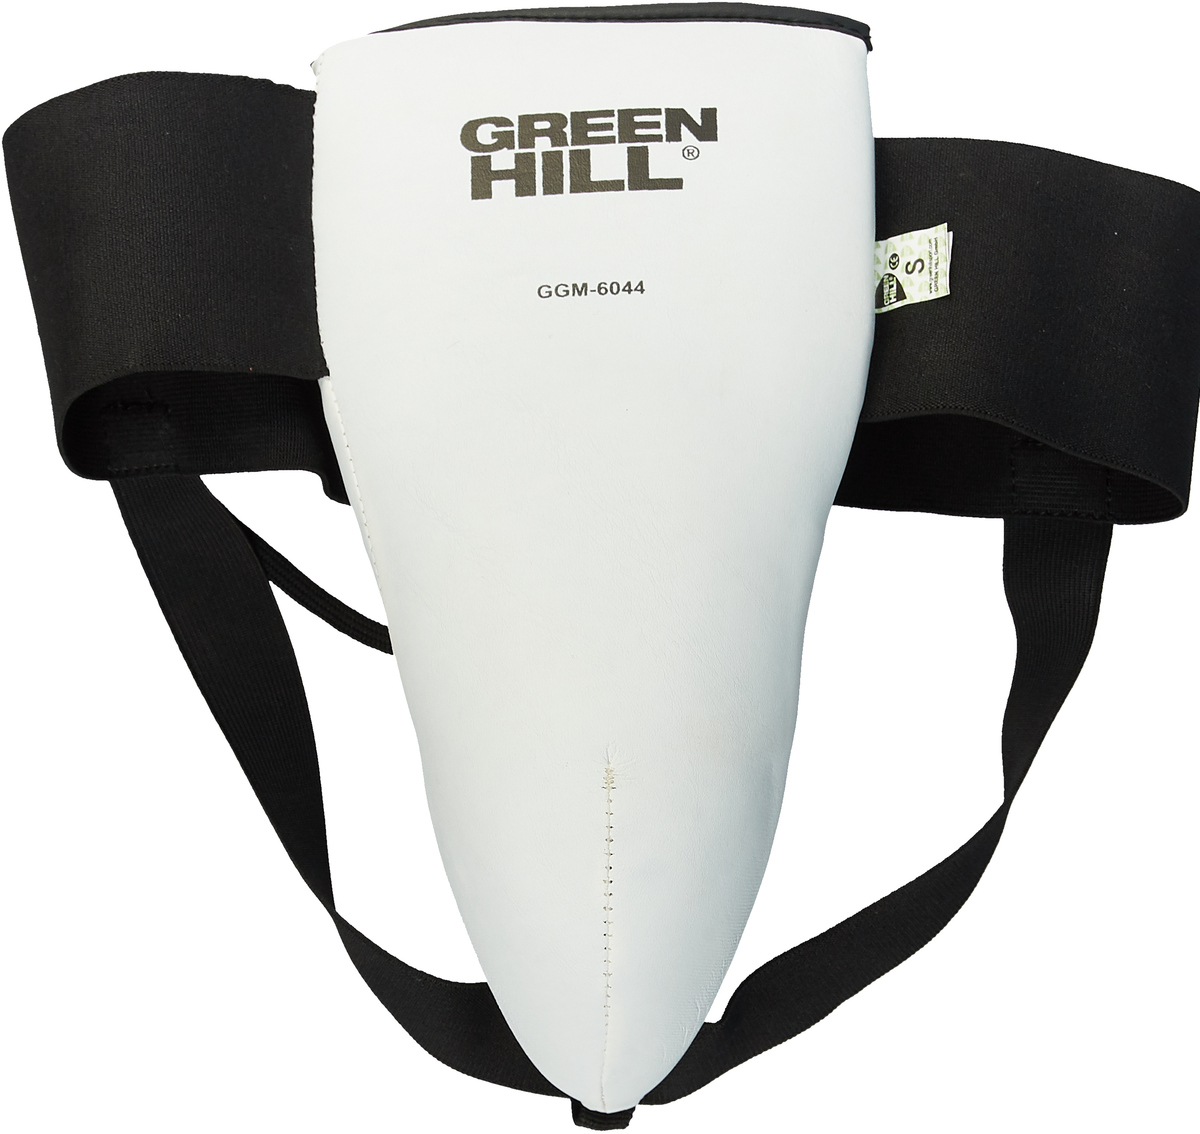 Защита паха Green Hill Mens, цвет: белый. Размер S green hill green hill bgs 1213 super star aib 10oz